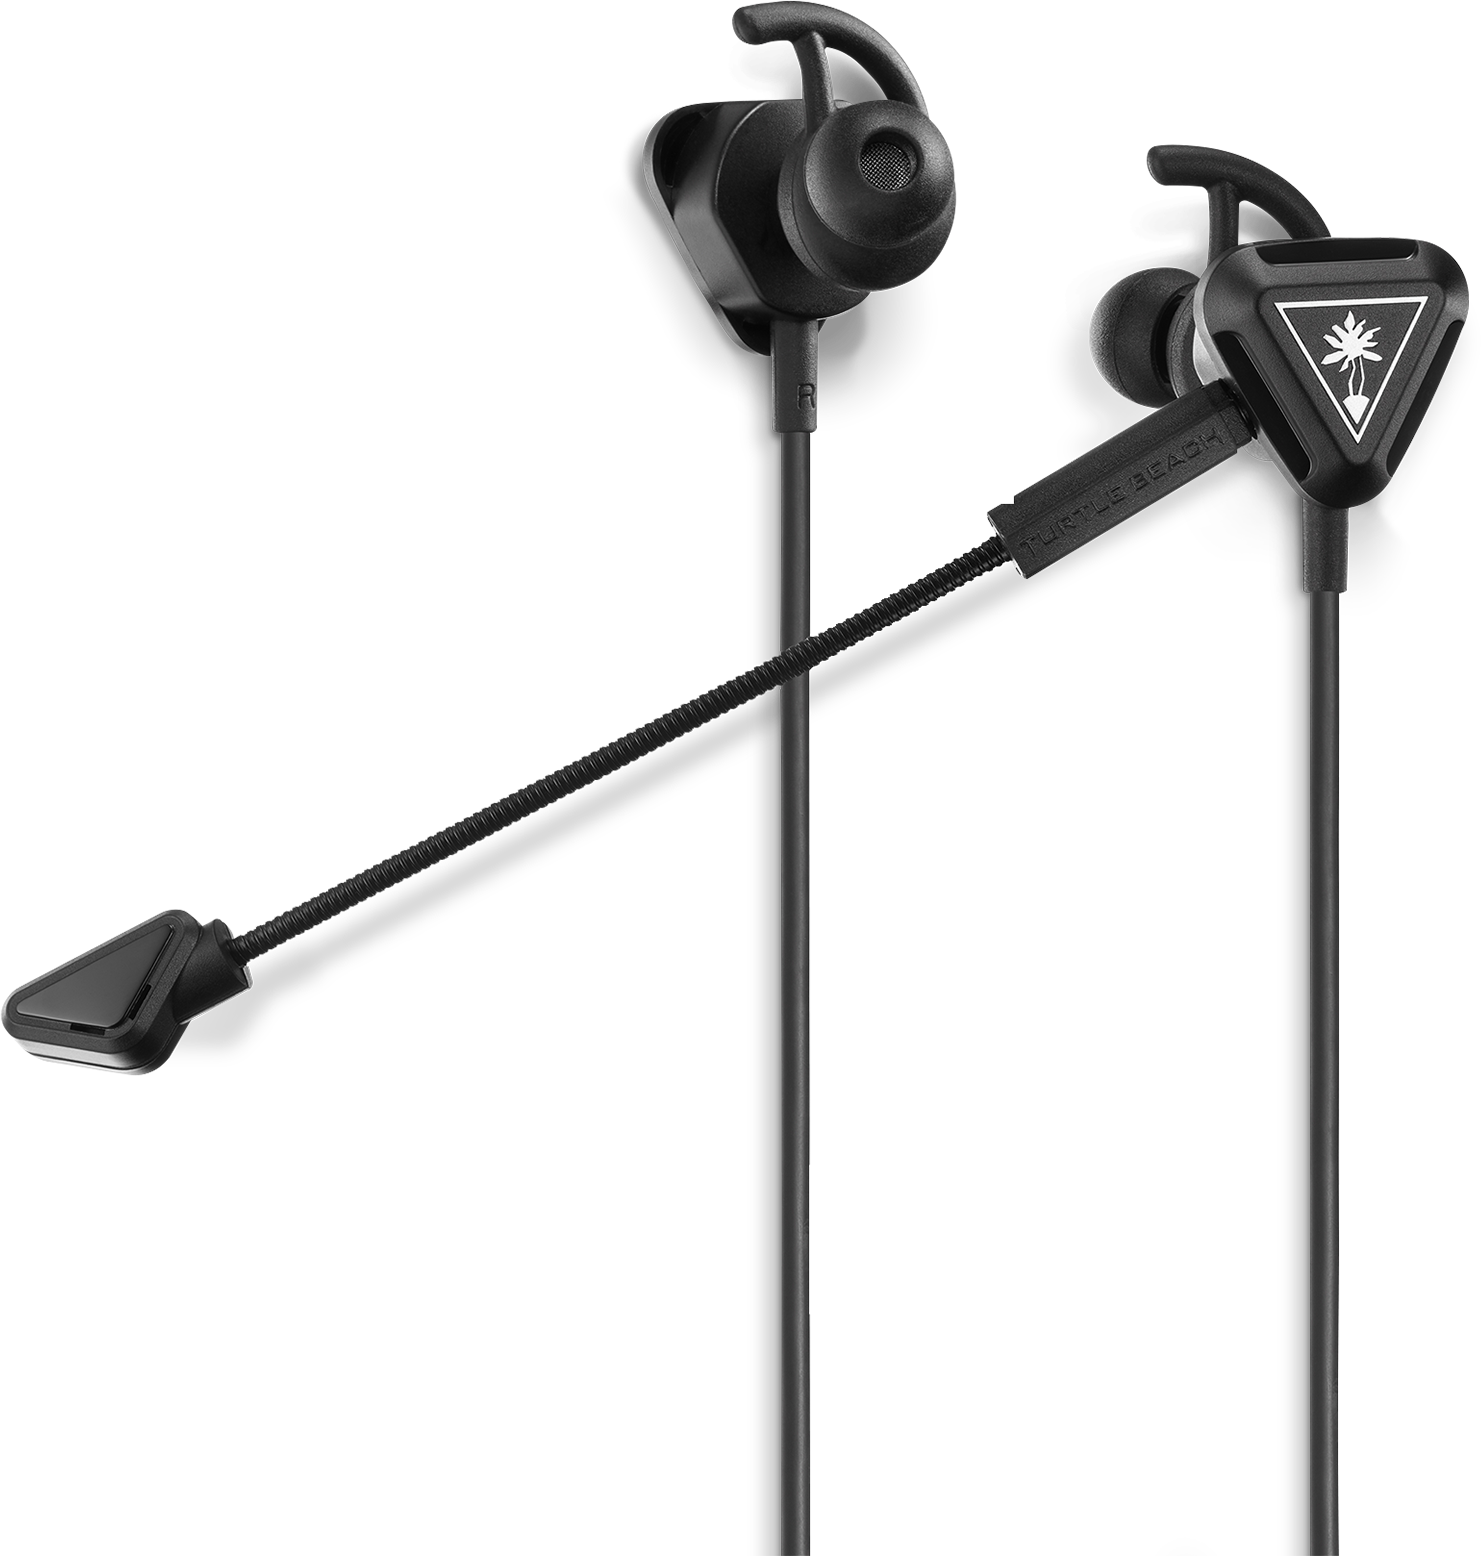 Front view of black Turtle Beach Battle Buds In-Ear Gaming Headset with microphone extended